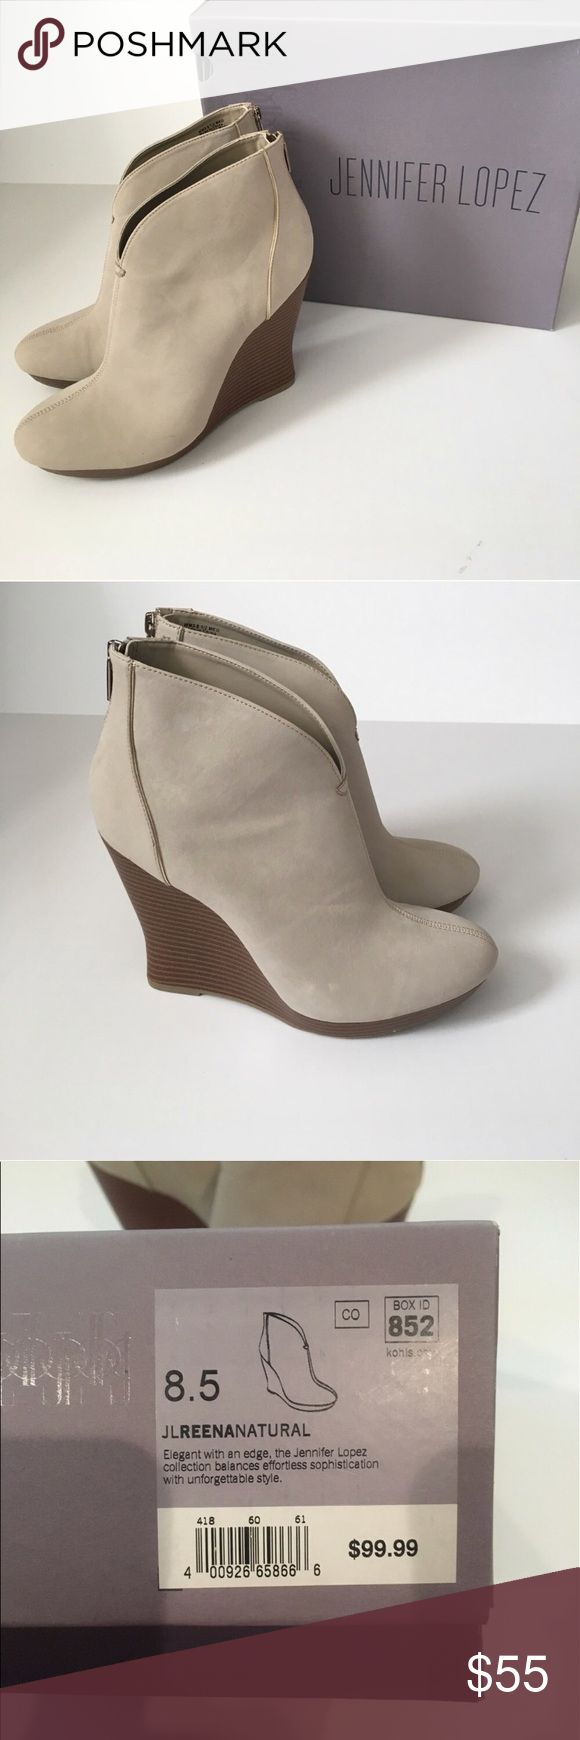 JLo ankle boots BRAND NEW Brand new neutral ankle boots with back zipper closure. Heel stands at about 5 inches tall. Super comfy! Jennifer Lopez Shoes Ankle Boots & Booties